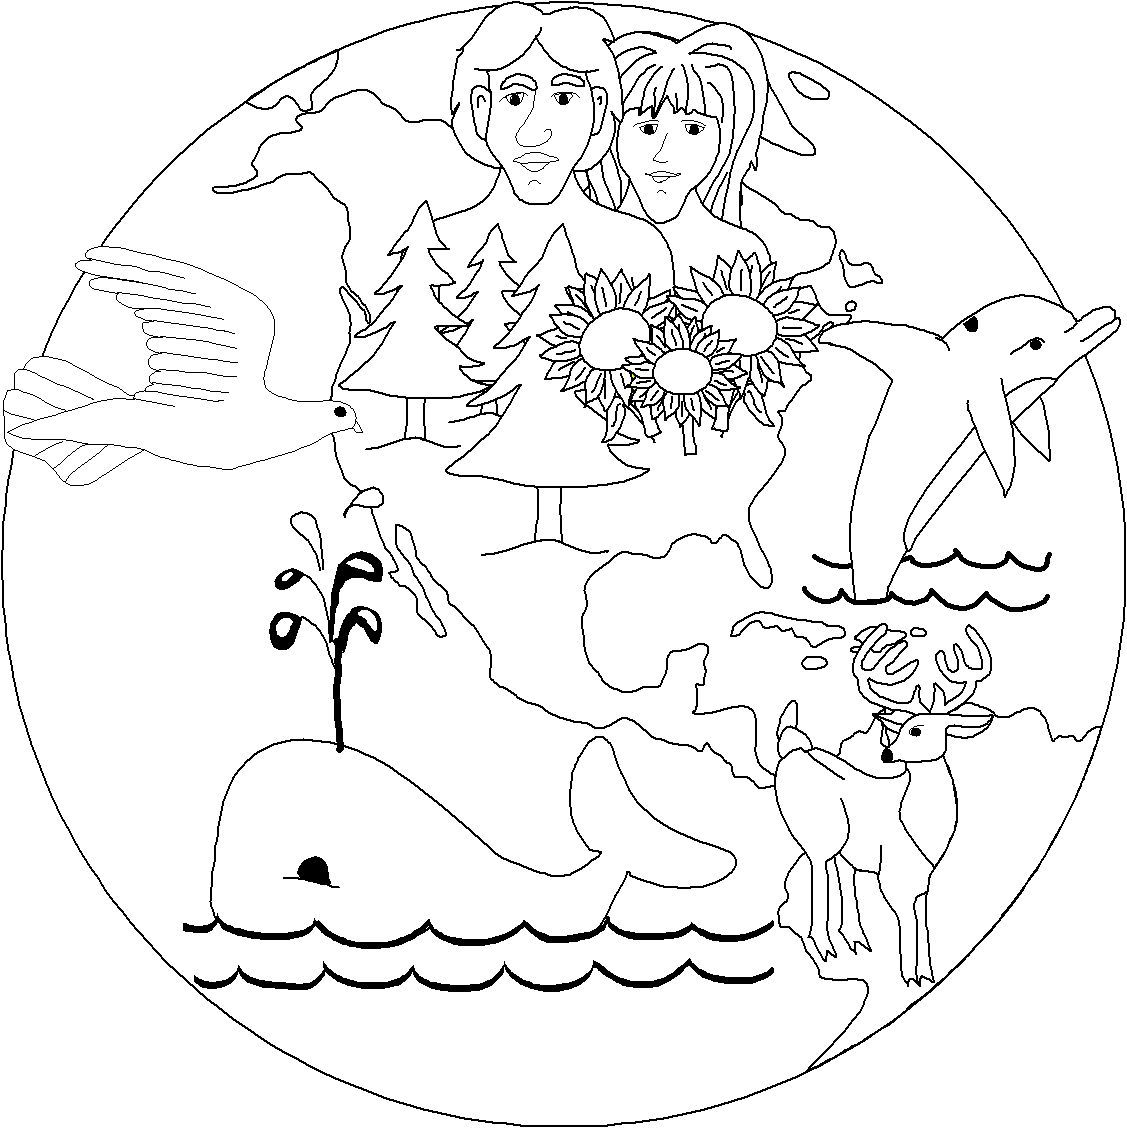 creation christian free coloring pages - photo#1